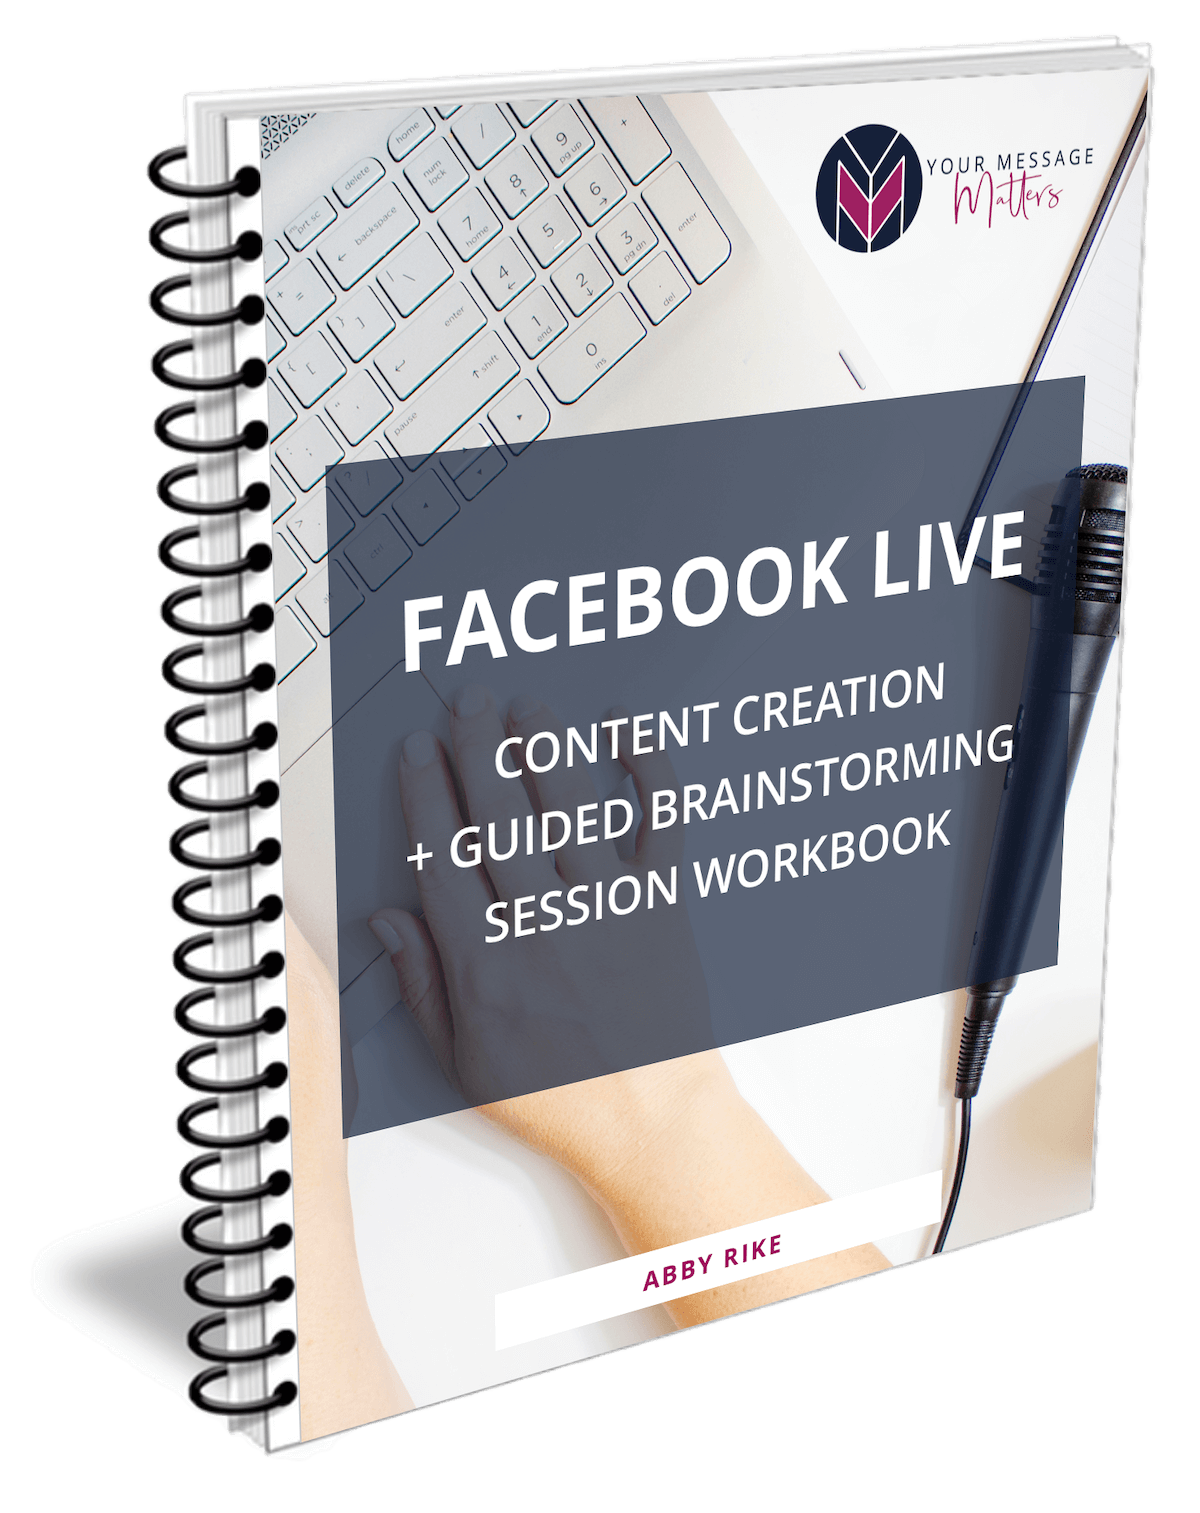 YMM-FBLive-Content-Creation-Guided-Brainstorming-Workbook-mockup.png